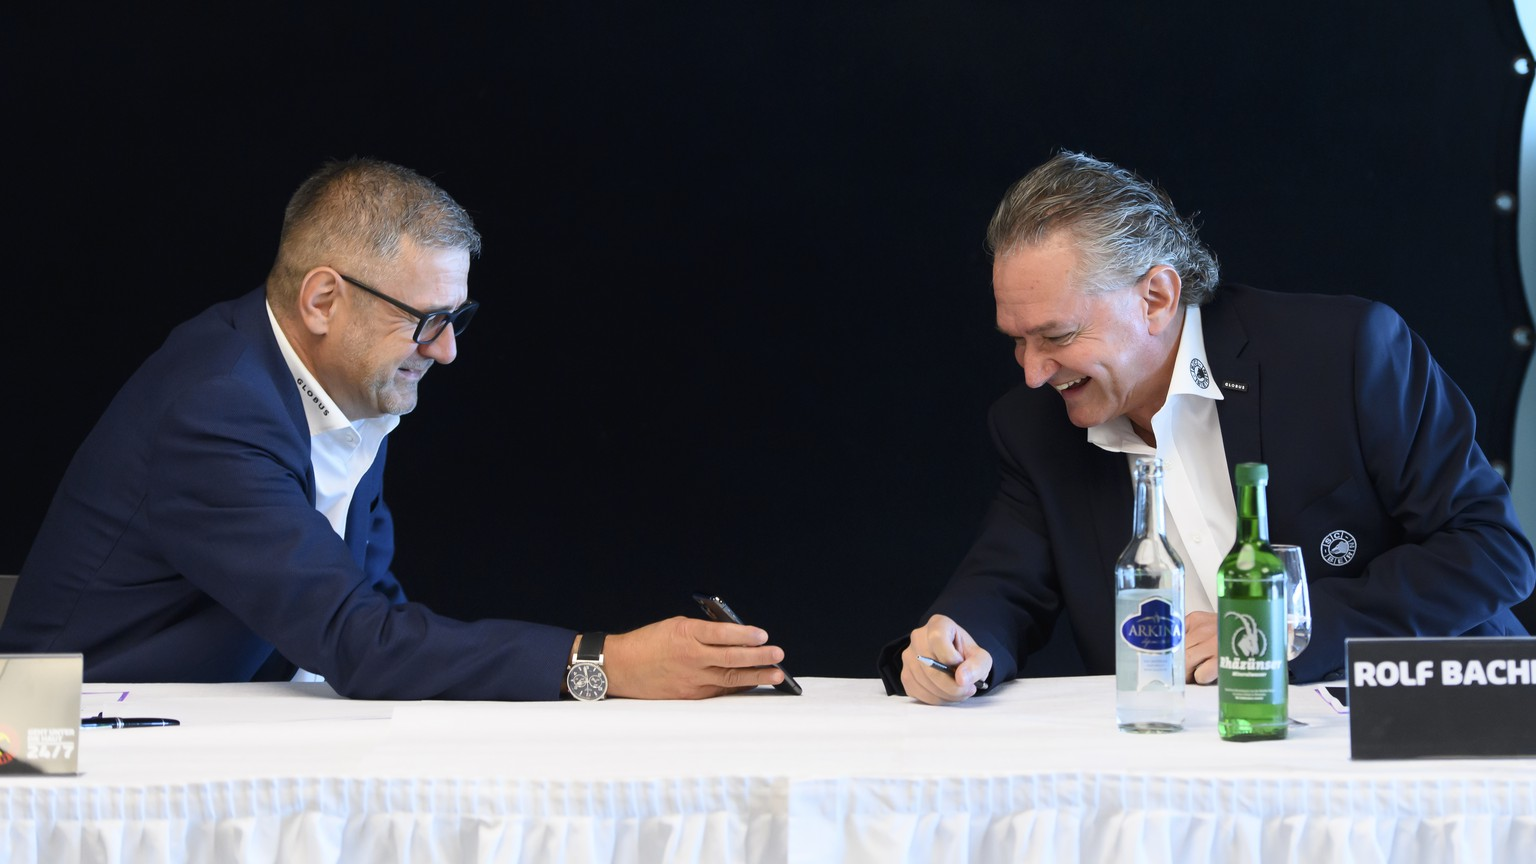 CEO Marc Luethi, links, und COO Rolf Bachmann, rechts, lachen vor einer Vorsaison-Medienkonferenz des SC Bern, am Montag, 31. August 2020 in der Postfinance Arena, in Bern. (KEYSTONE/Anthony Anex)